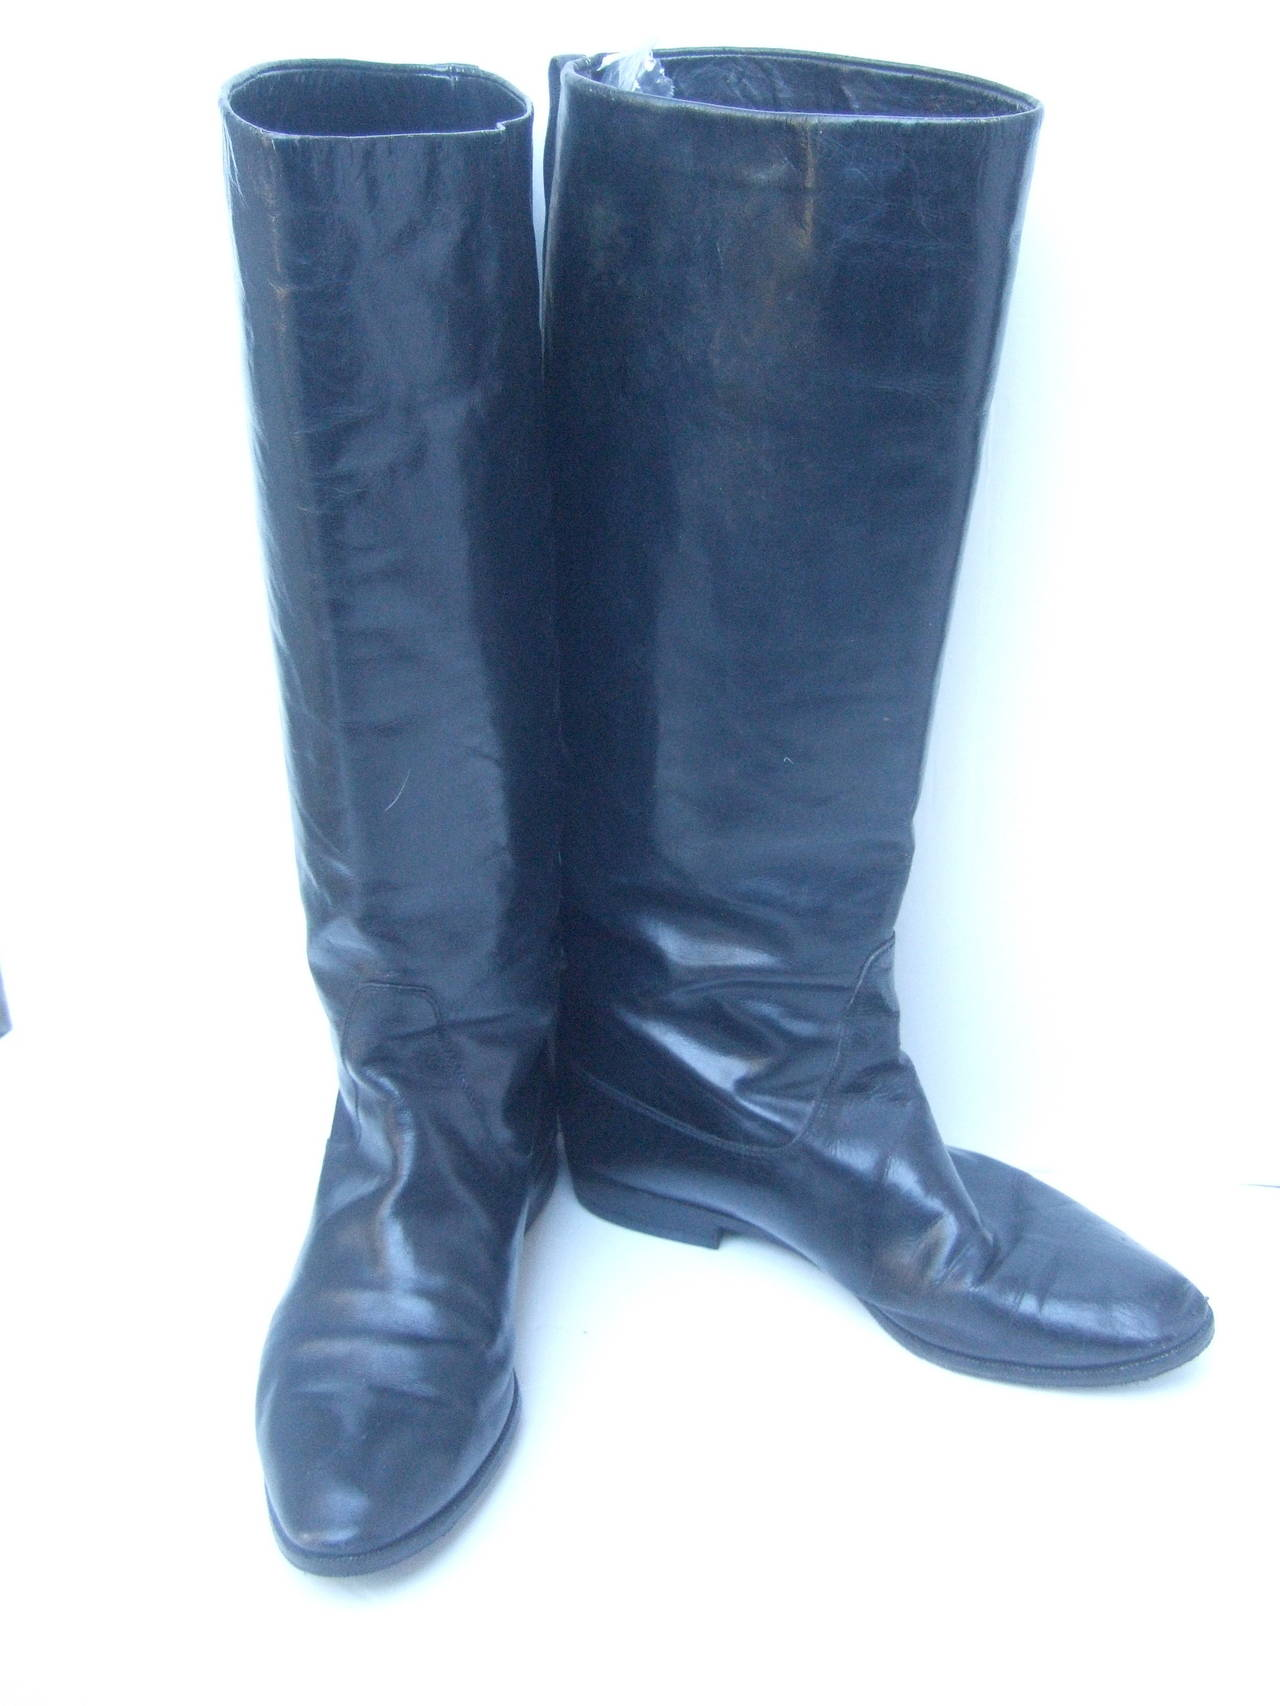 Gucci Black Leather Vintage Riding Boots c 1980s Size 38.5 4